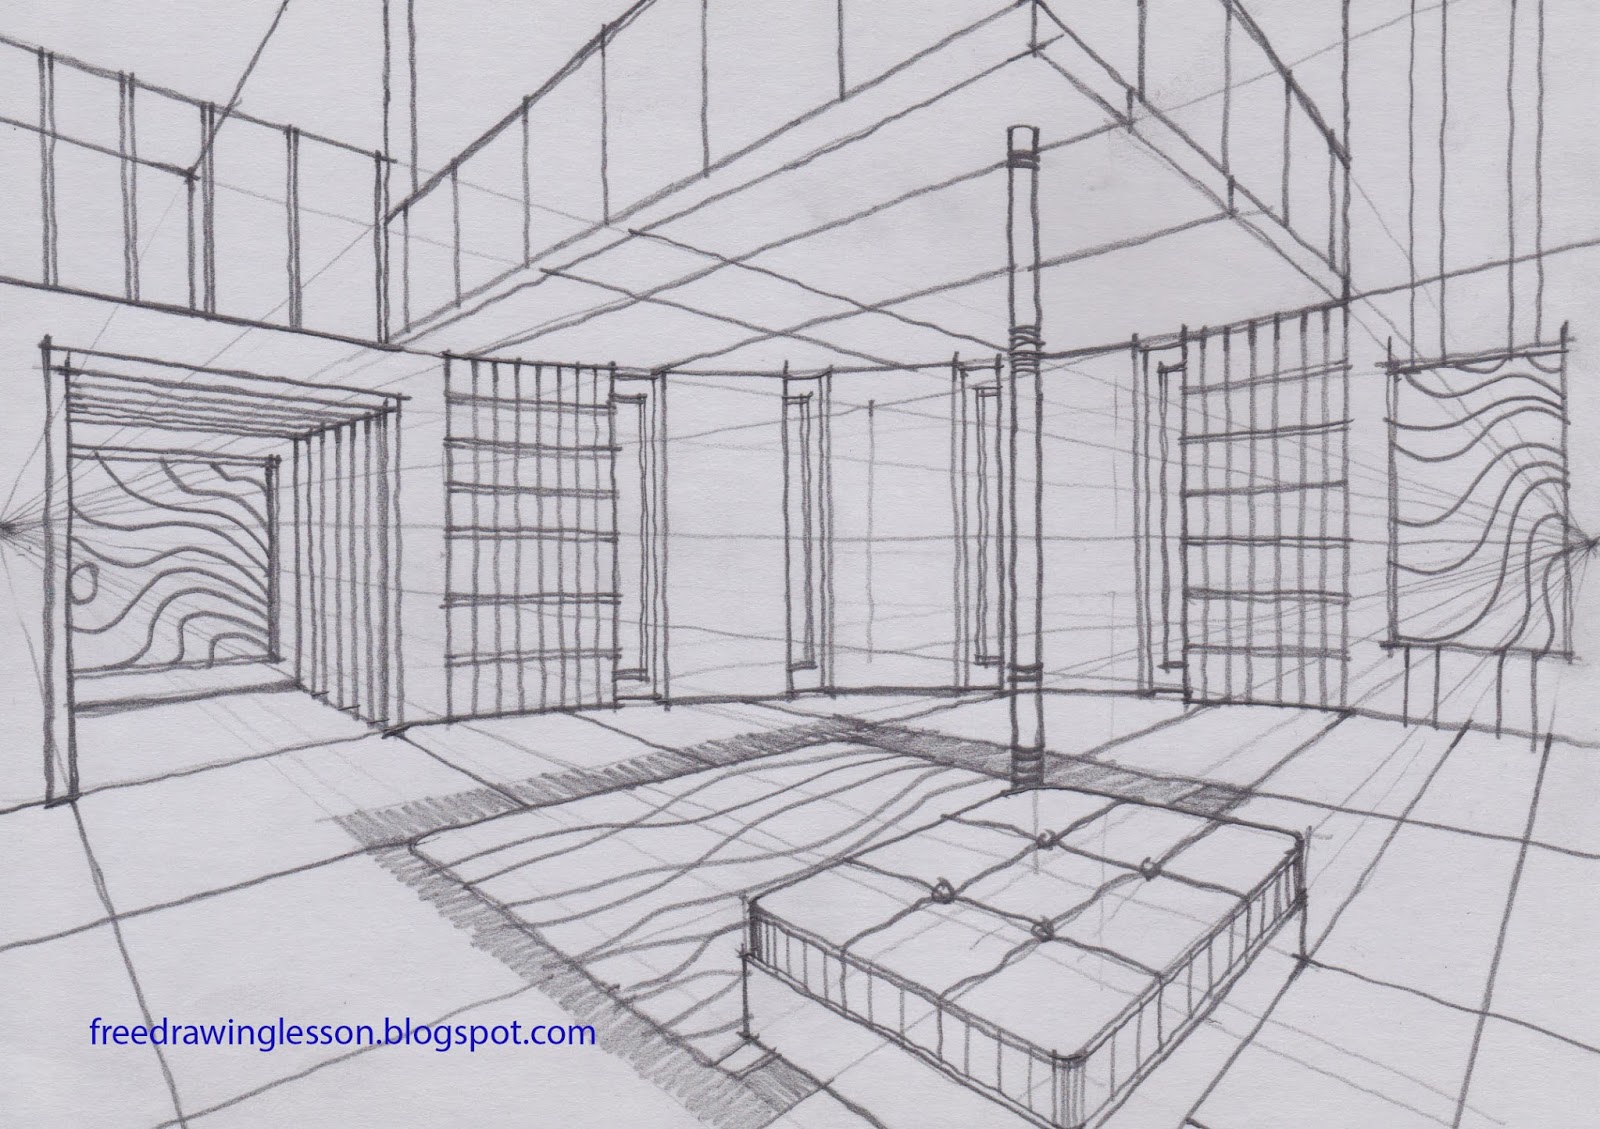 Living Room 2 Point Perspective two perspective drawing room rooms,perspective.printable coloring